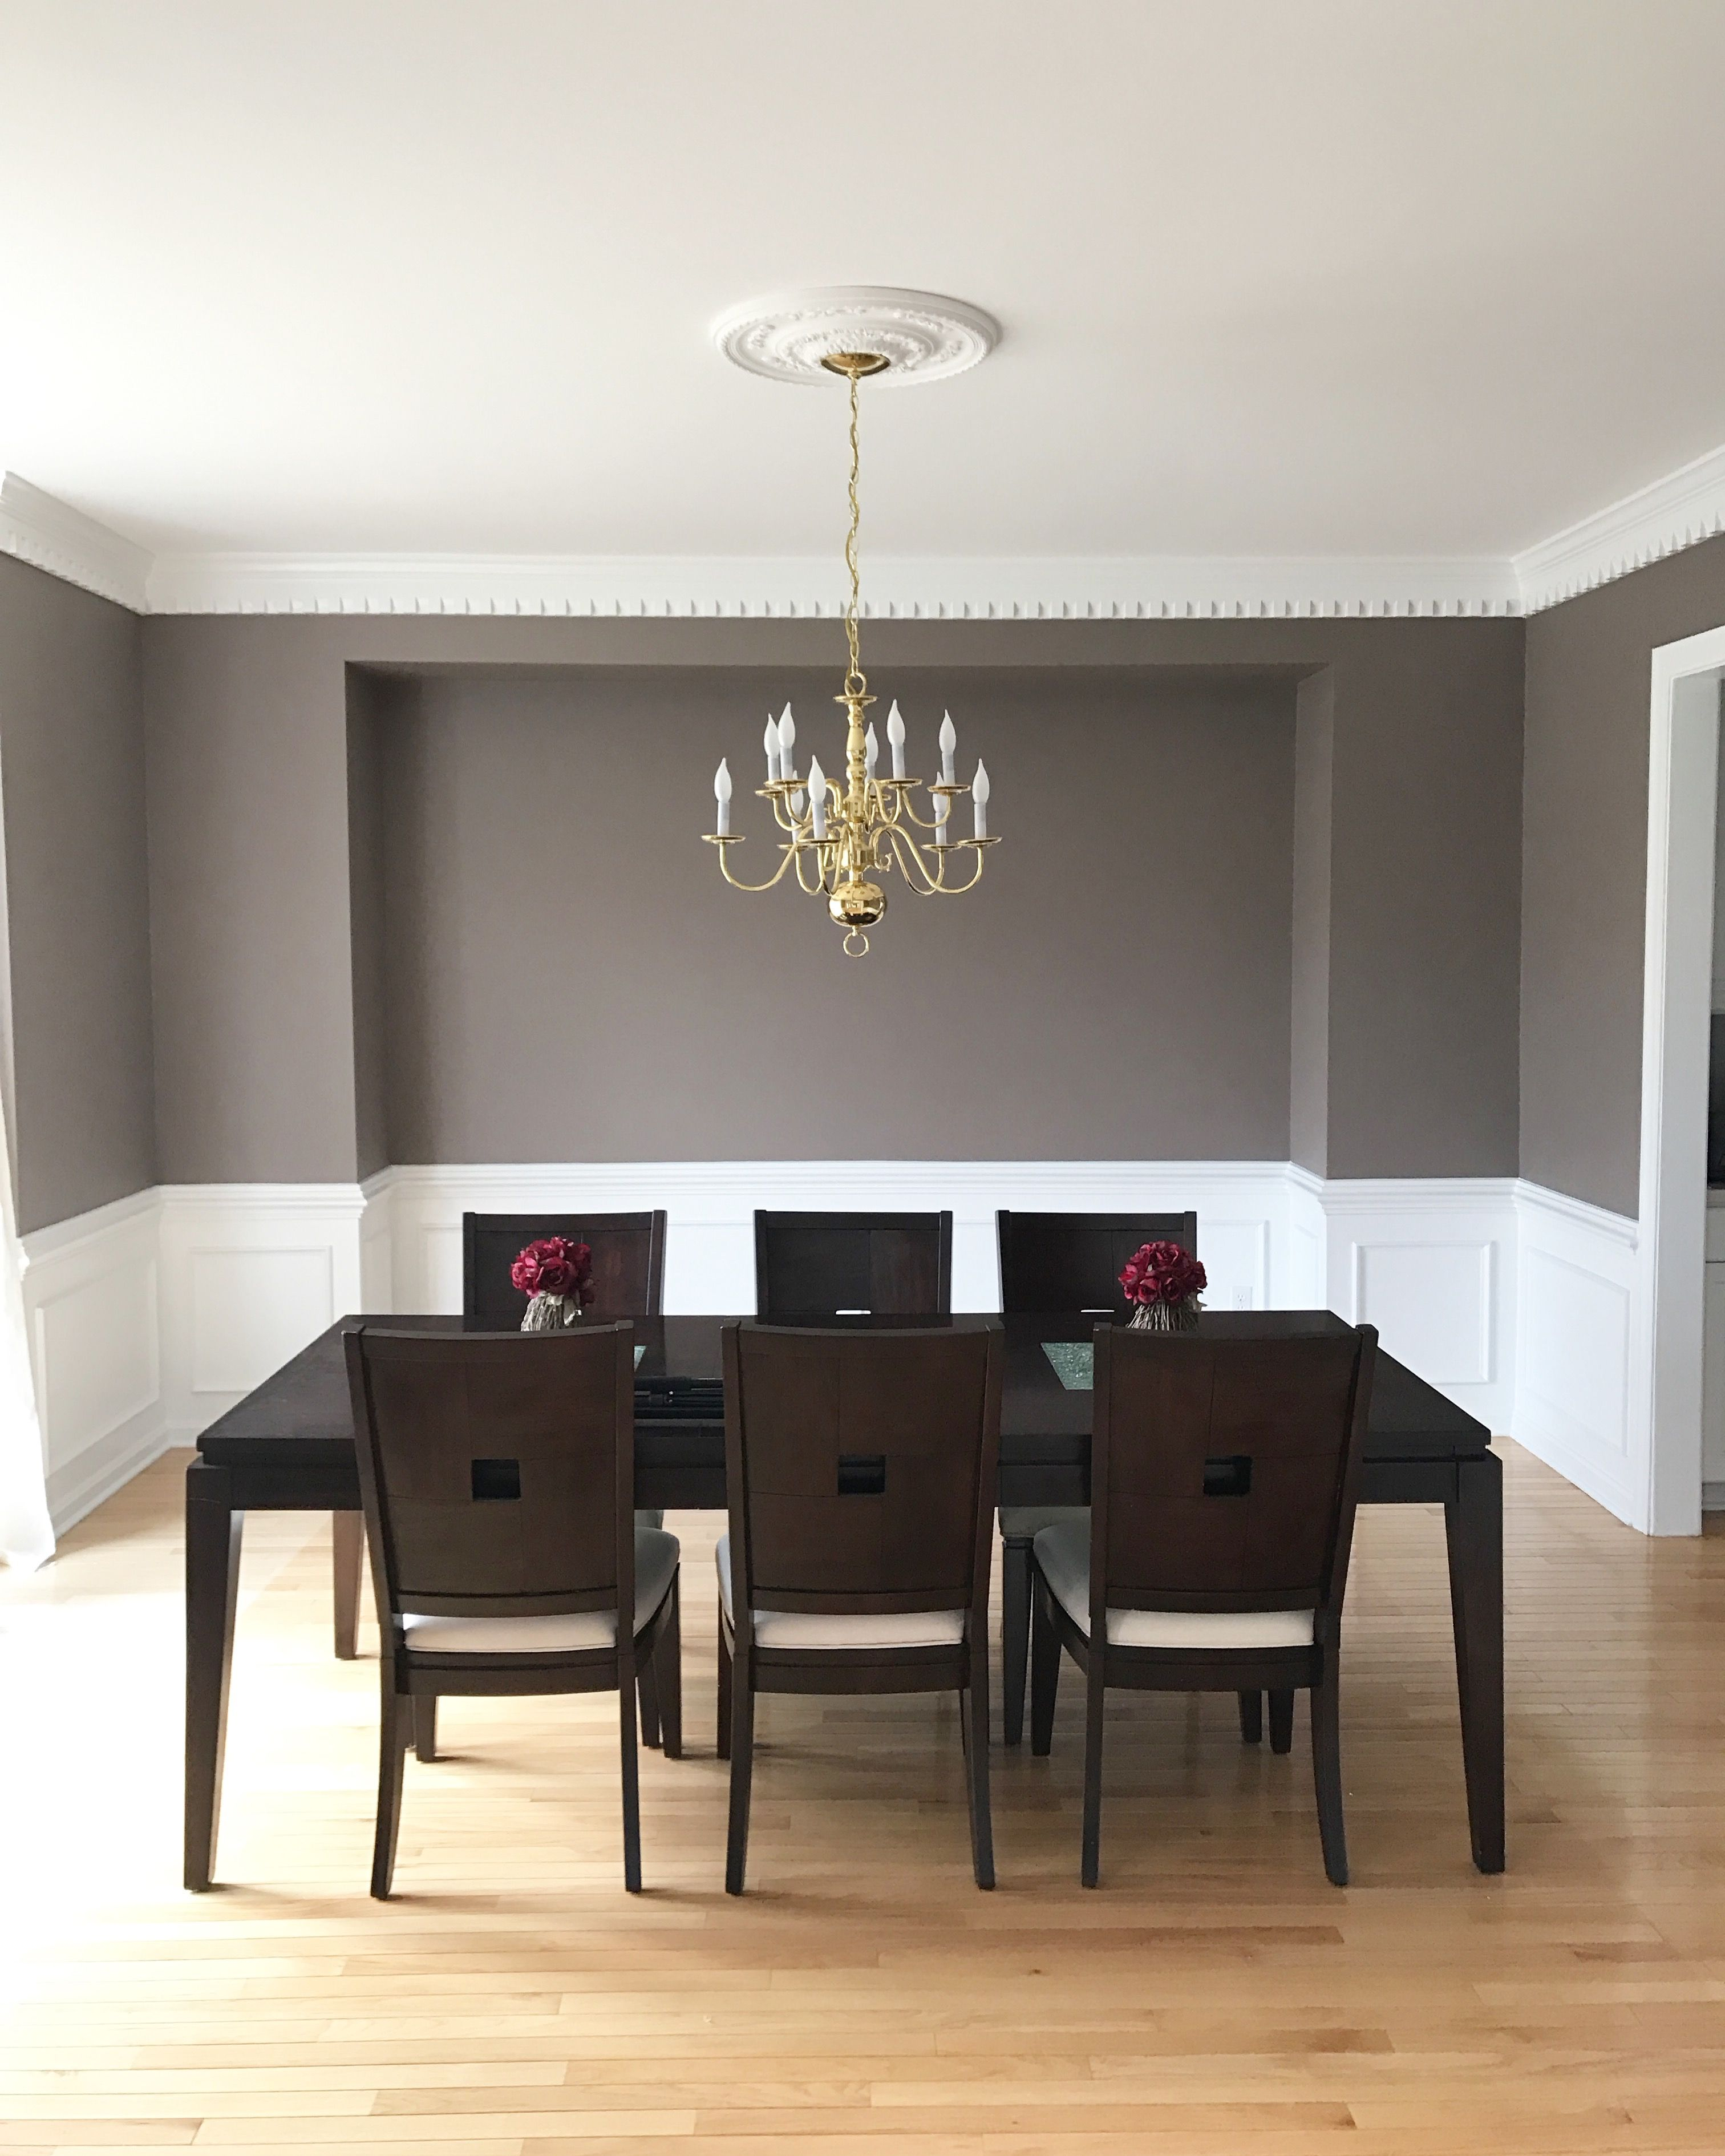 Dining Room Lighting Lamps For Your Decor Www Diningroomlighting Eu